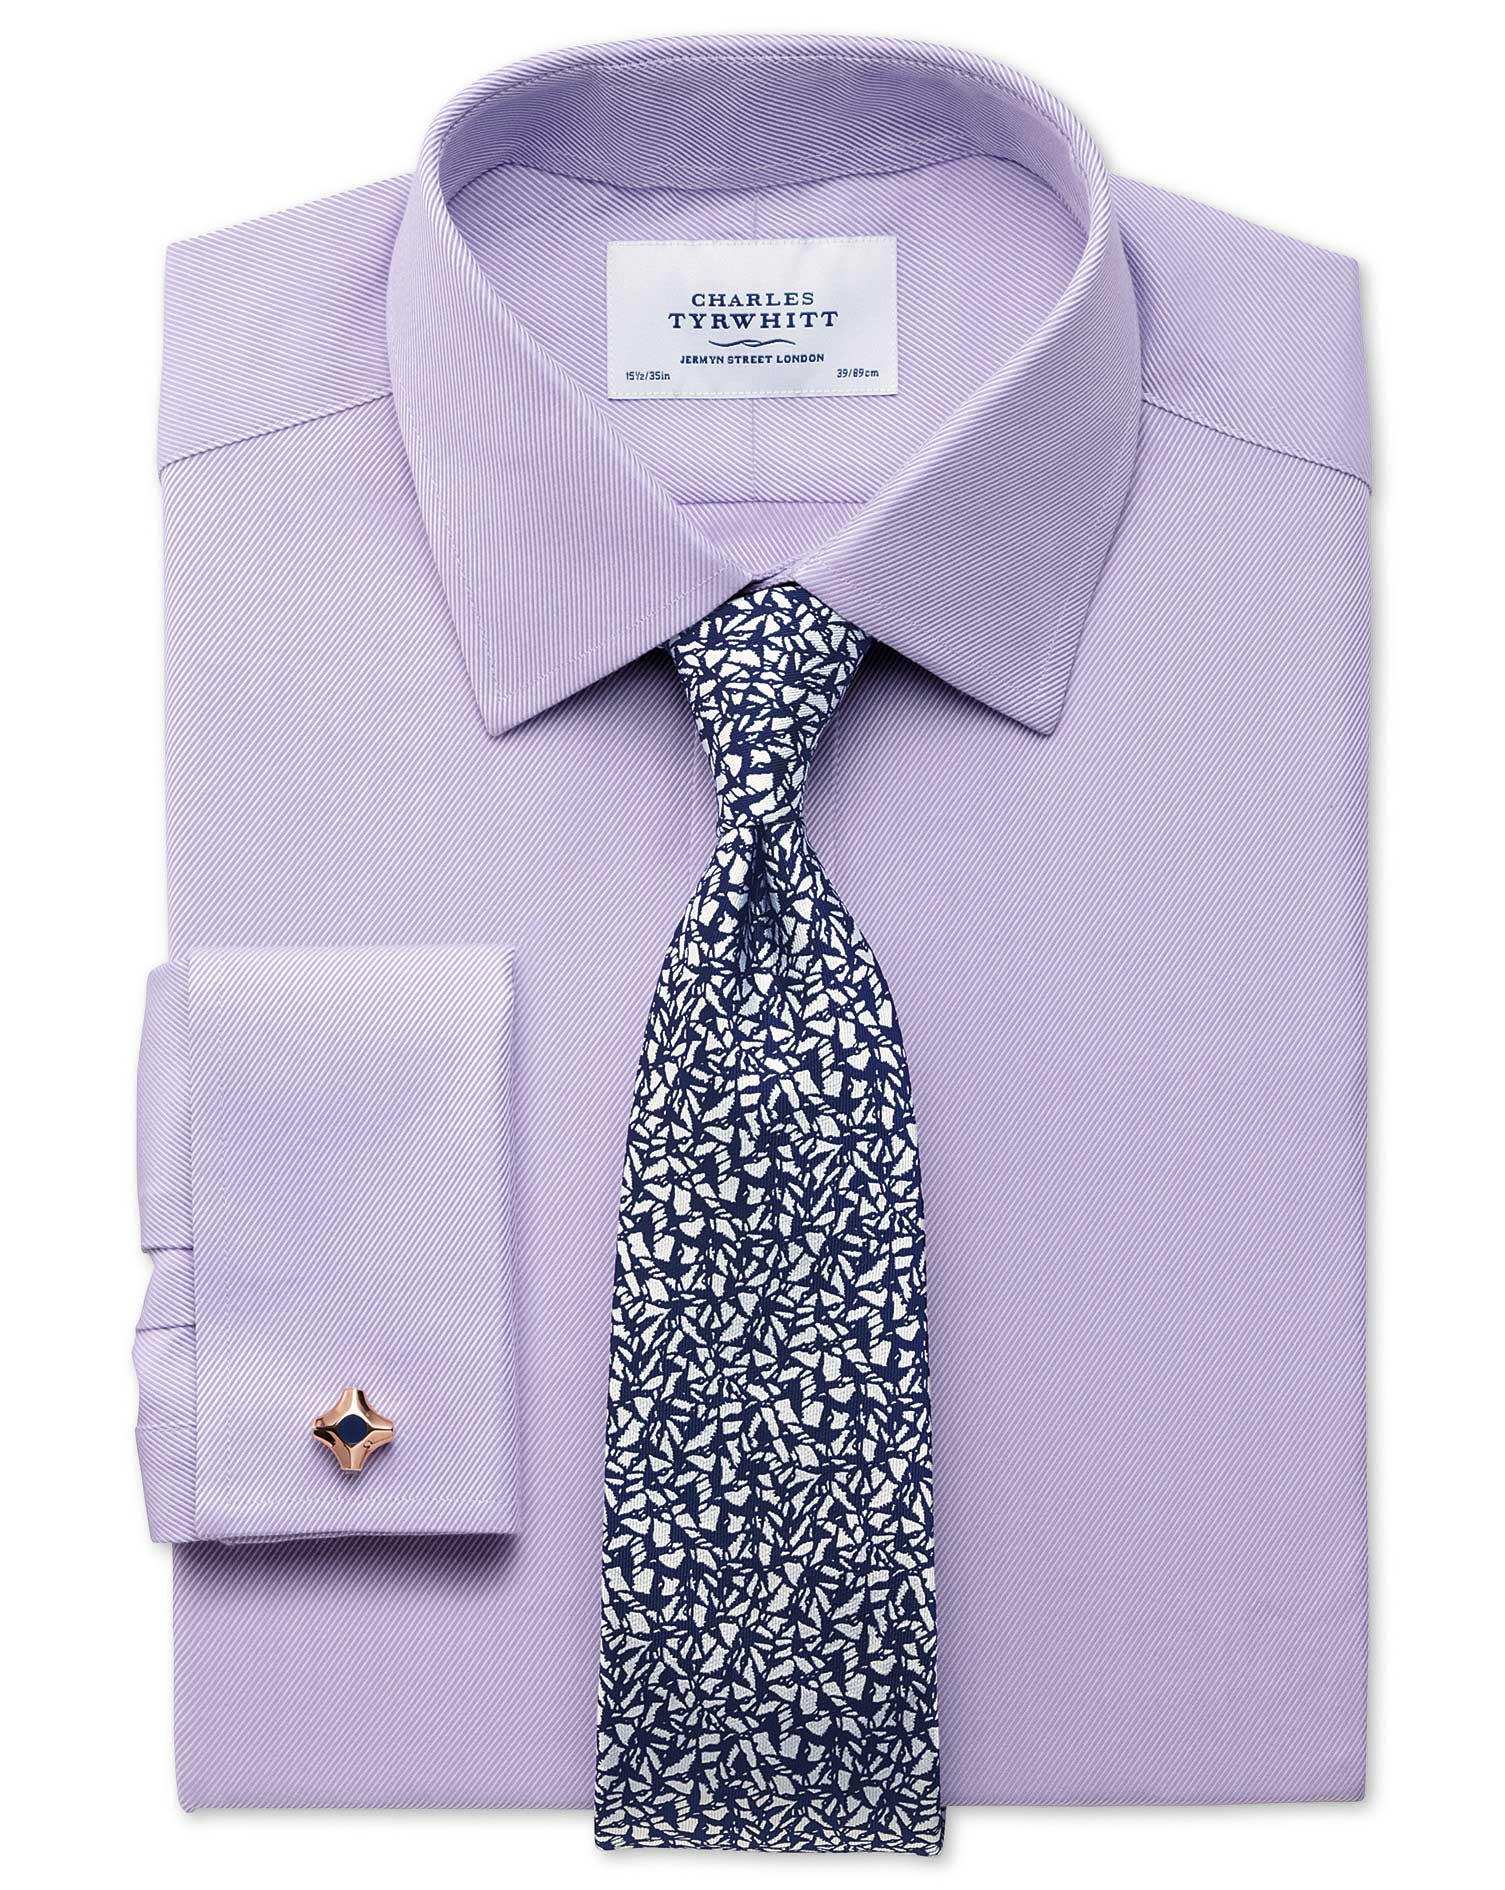 Extra slim fit egyptian cotton cavalry twill lilac shirt for Charles tyrwhitt shirts review